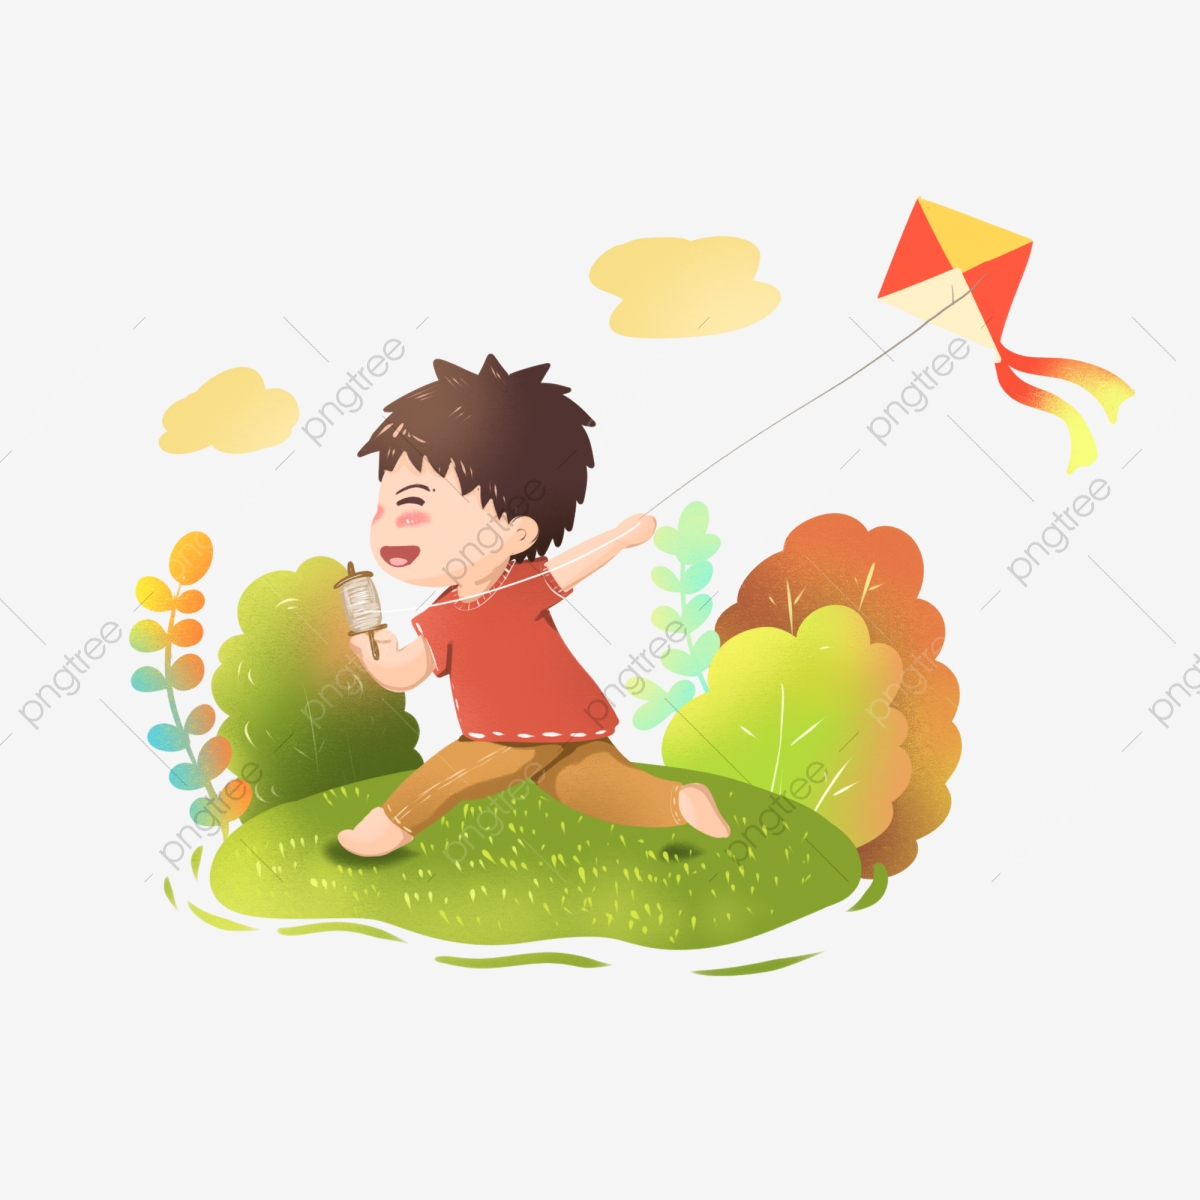 Kite clipart autumn. Children playing creative illustration